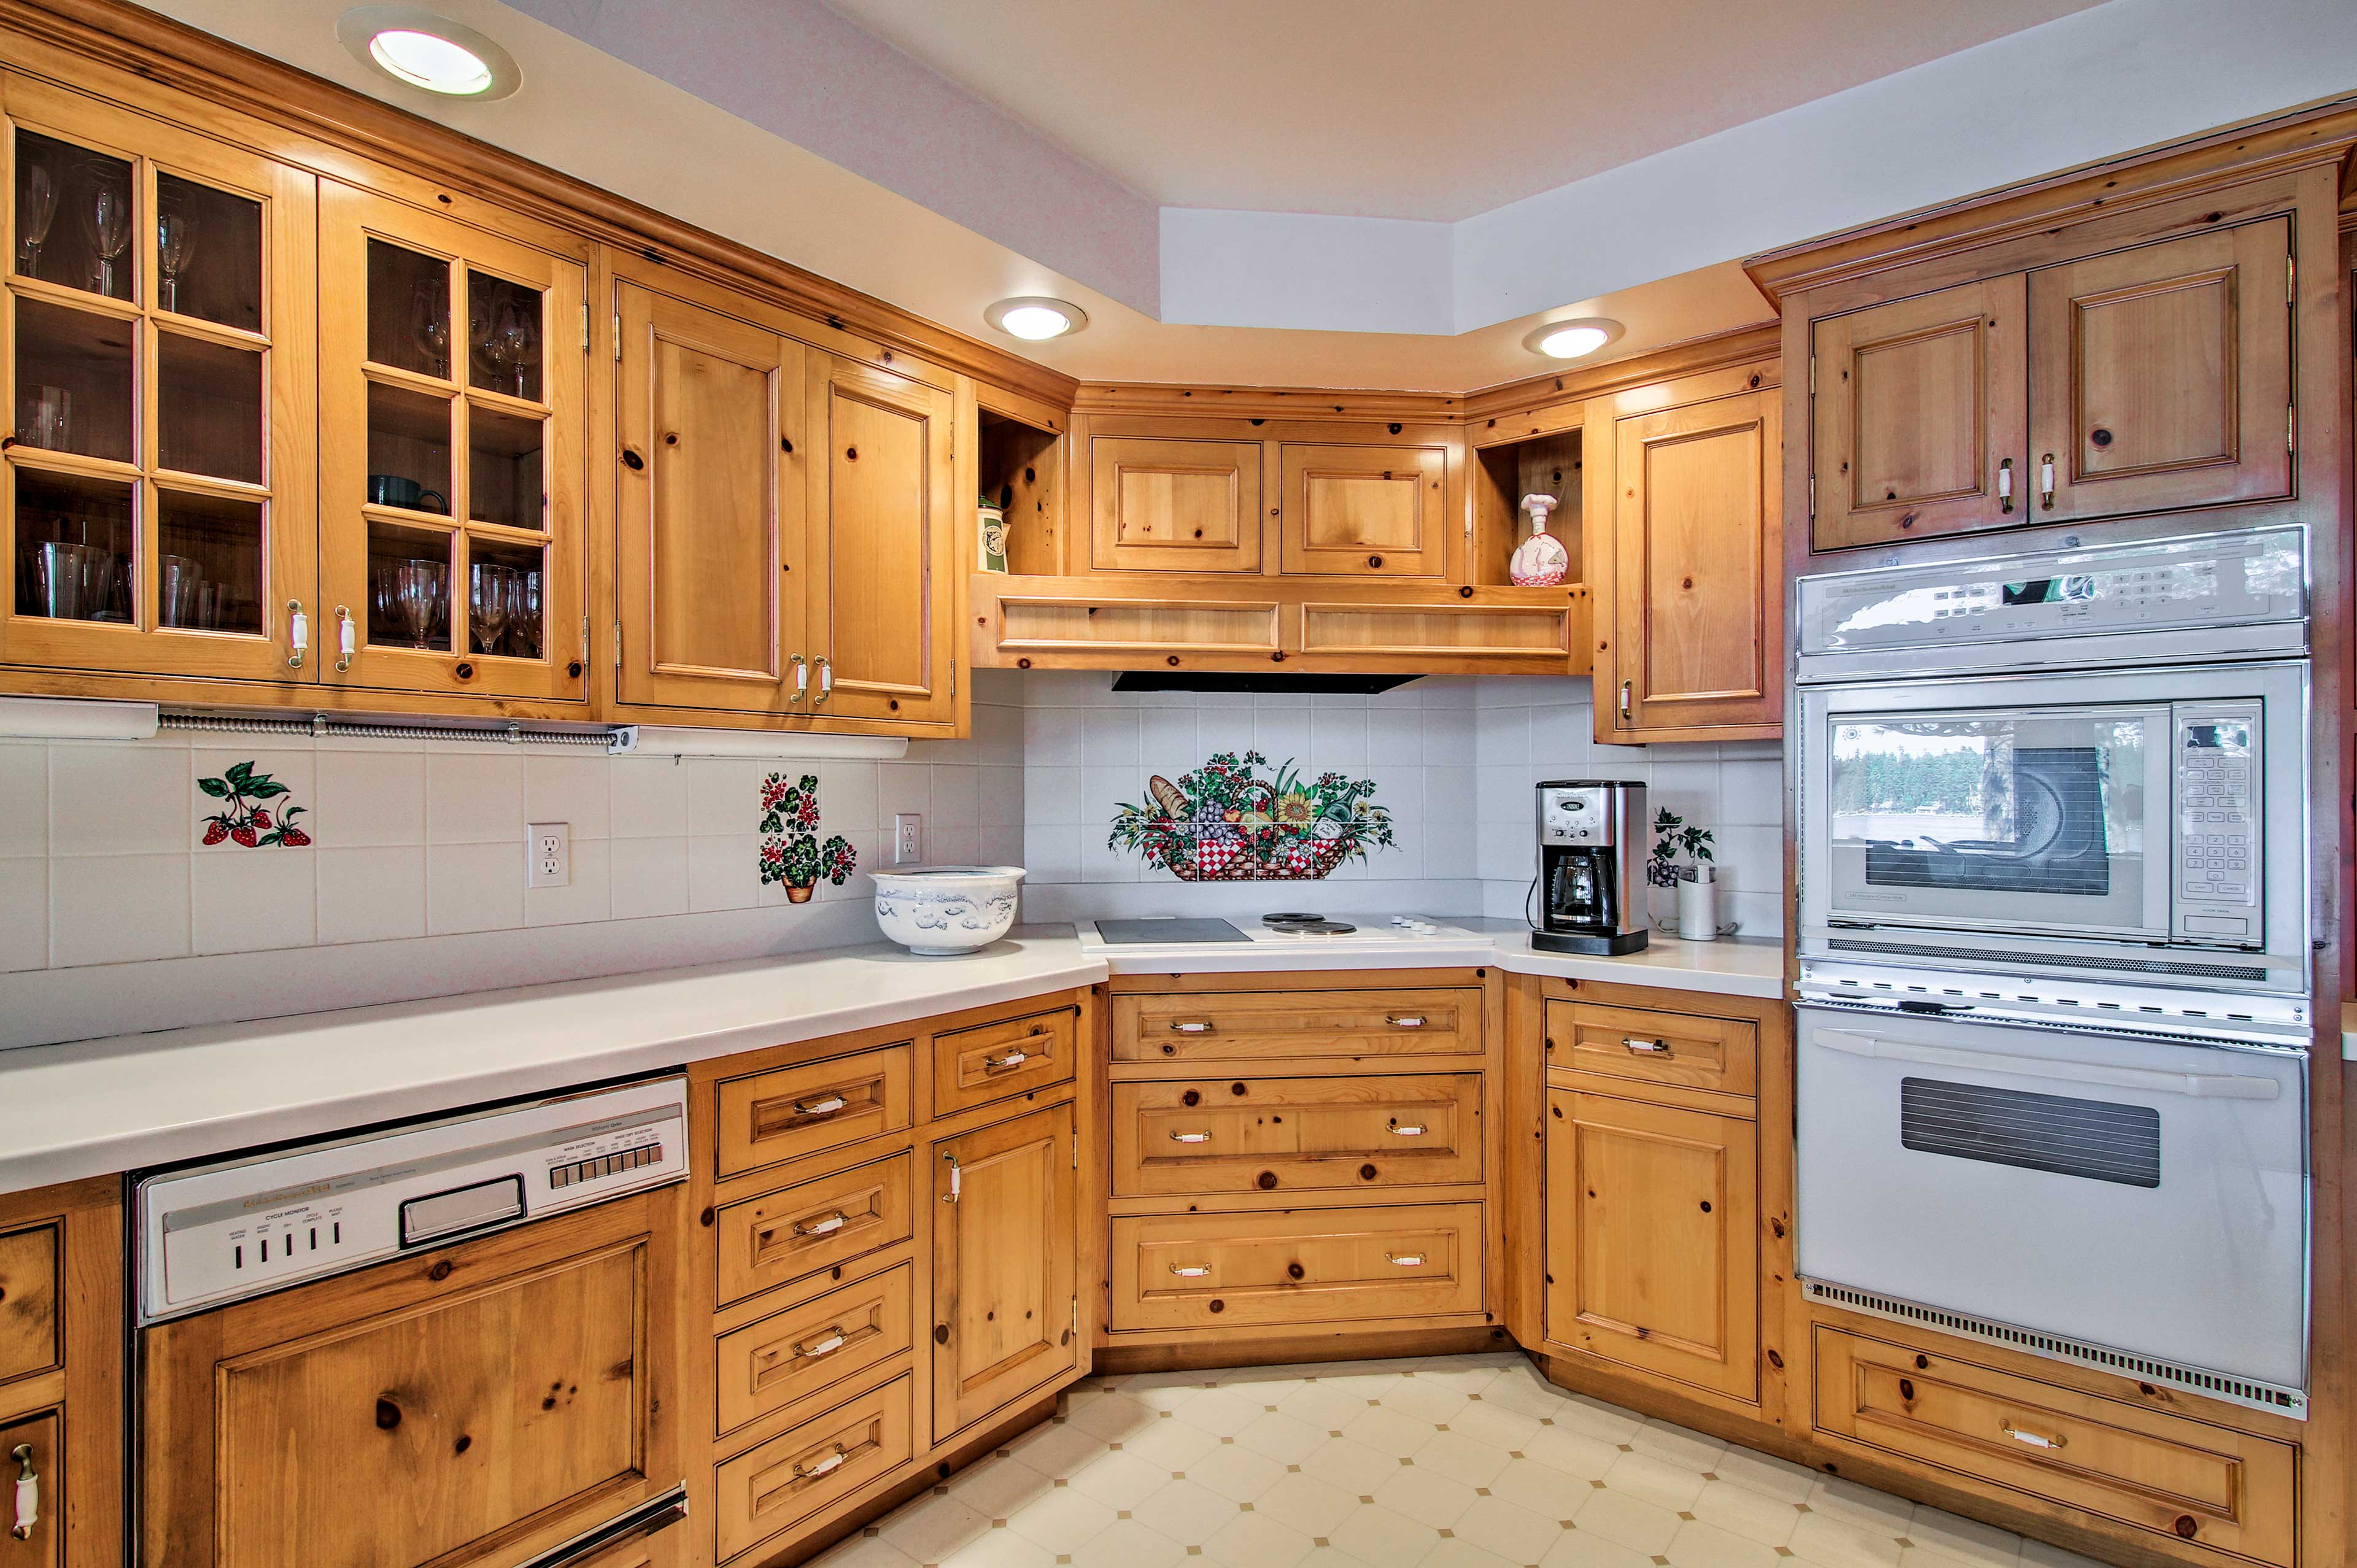 Head into the fully equipped kitchen to prepare home-cooked meals.